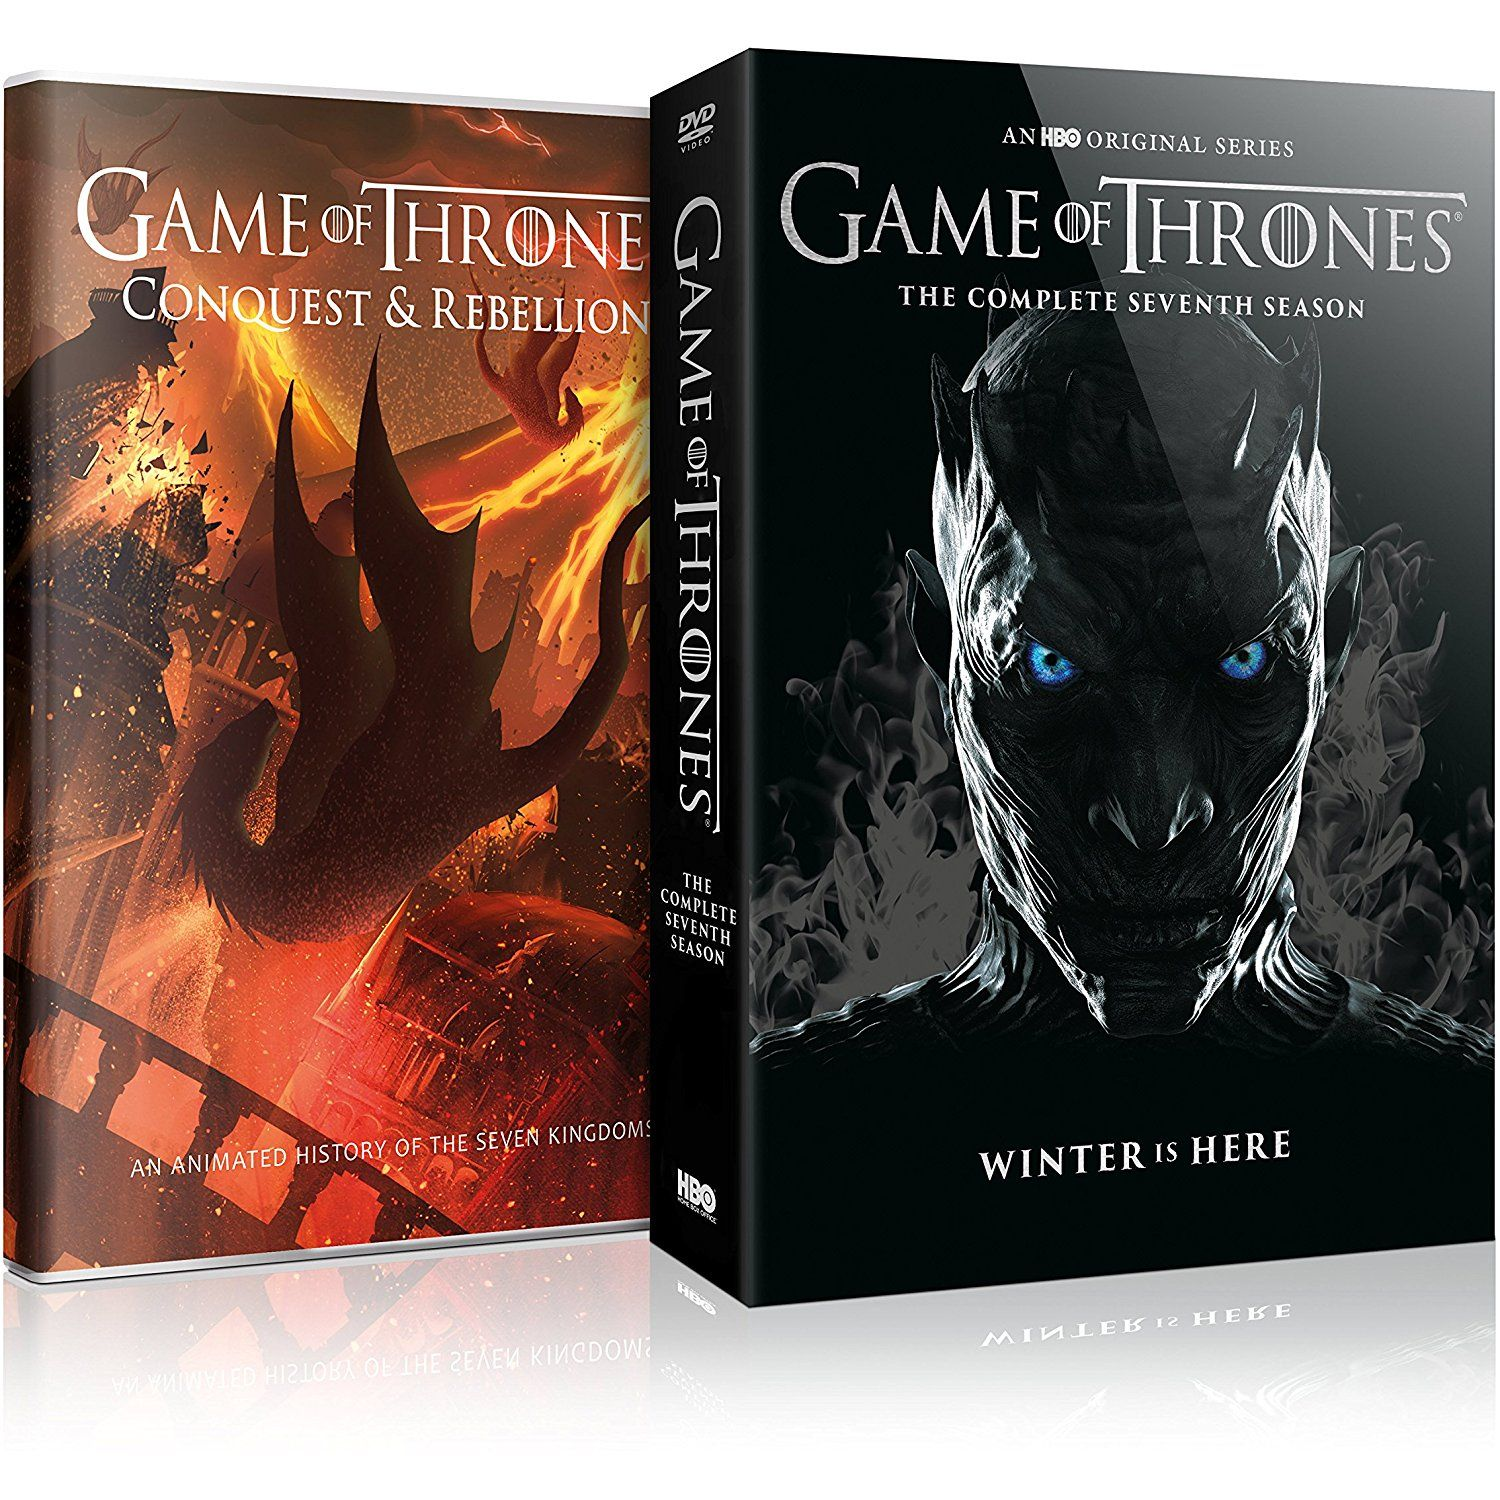 Game of thrones season 7 7eps to view further for